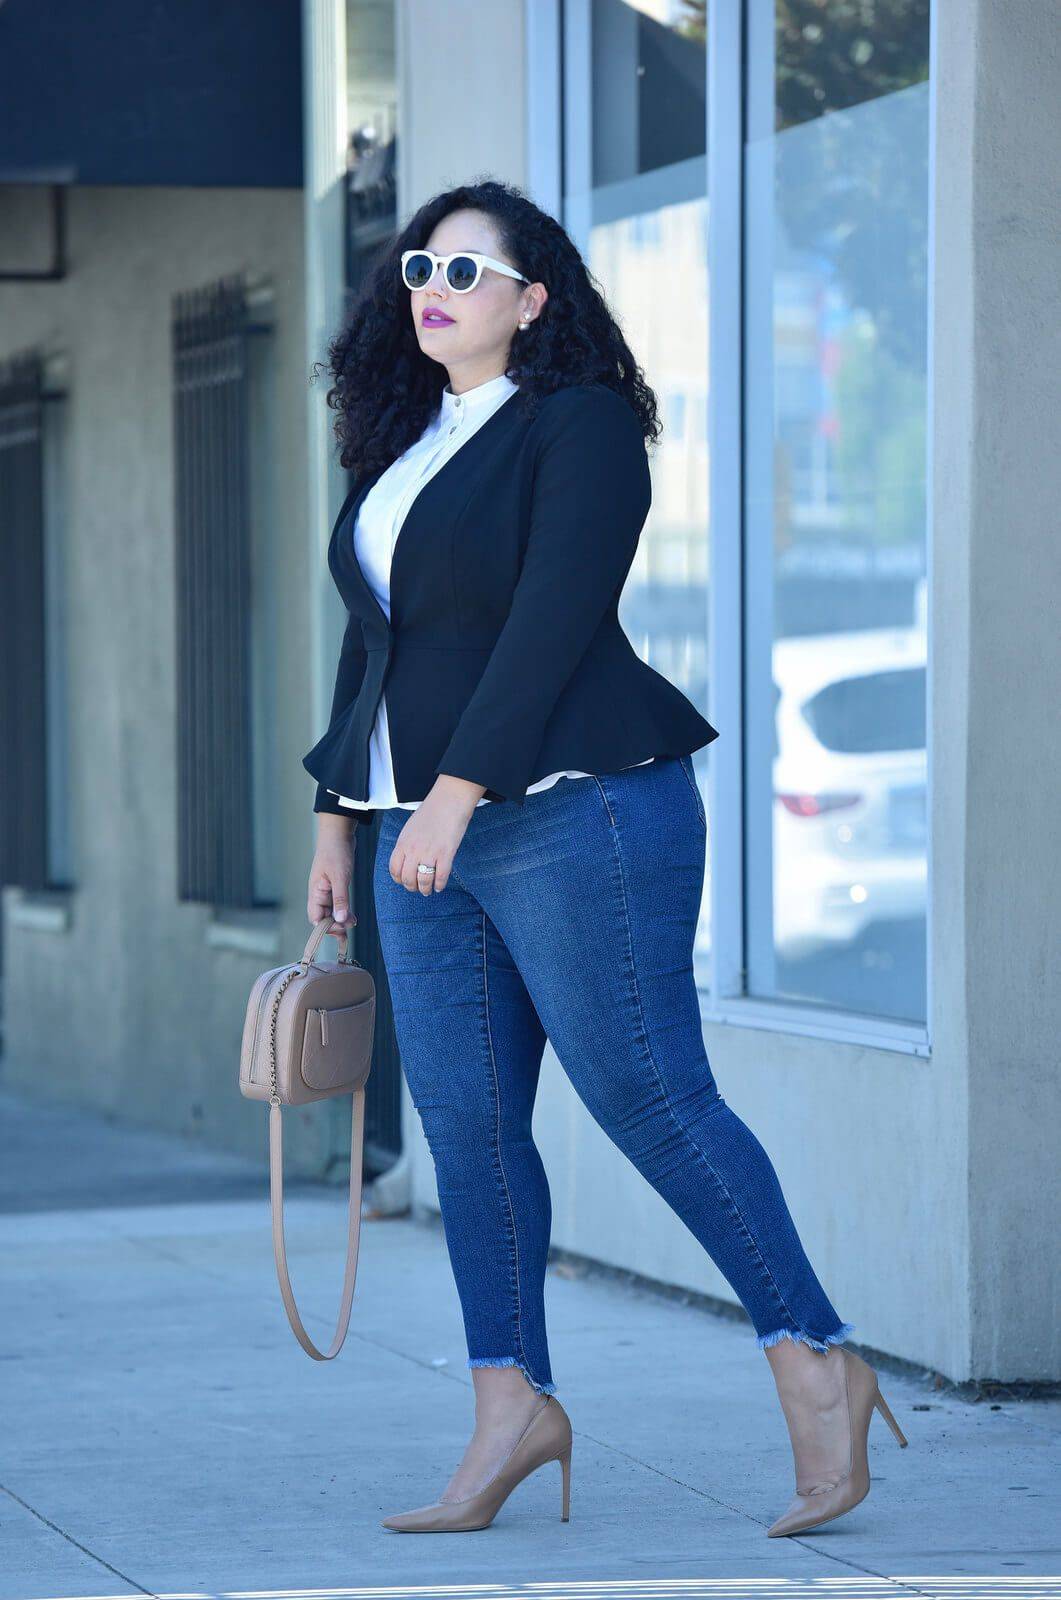 Image result for fat lady wearing skinny jeans With A Peplum Blazer